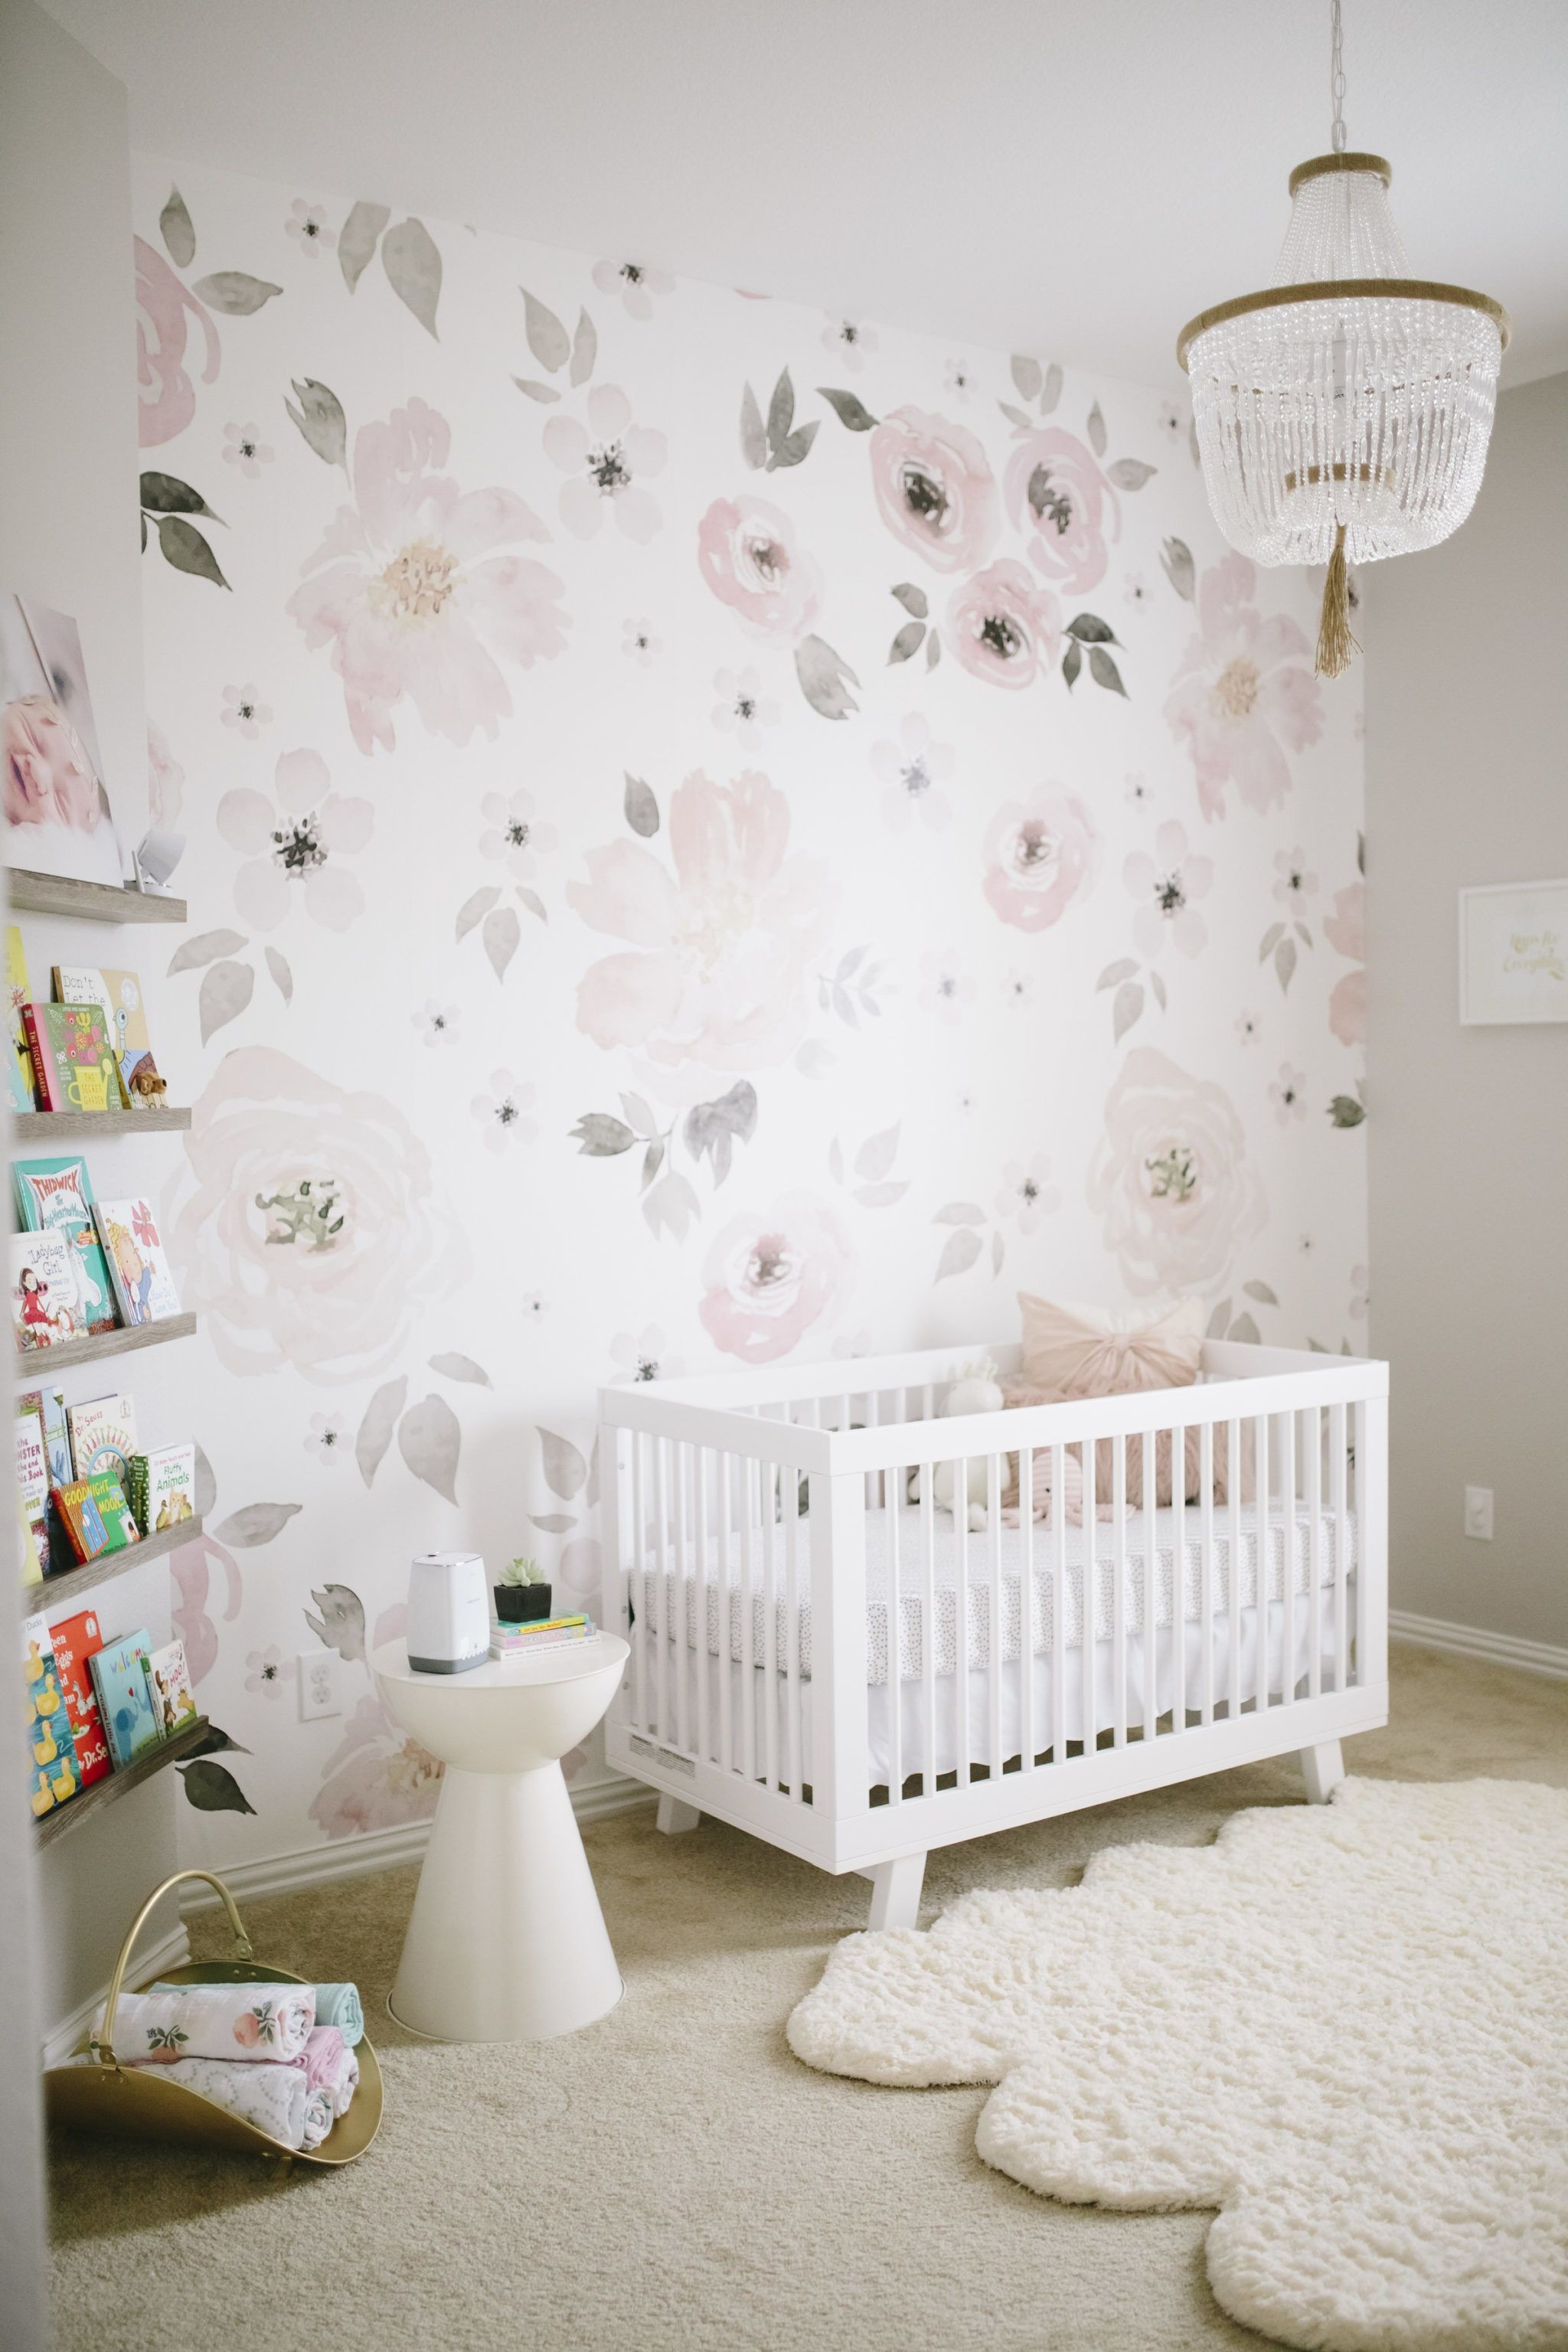 Res: 2048x3072, Floral Wallpaper in Pink and Gray Girl Nursery